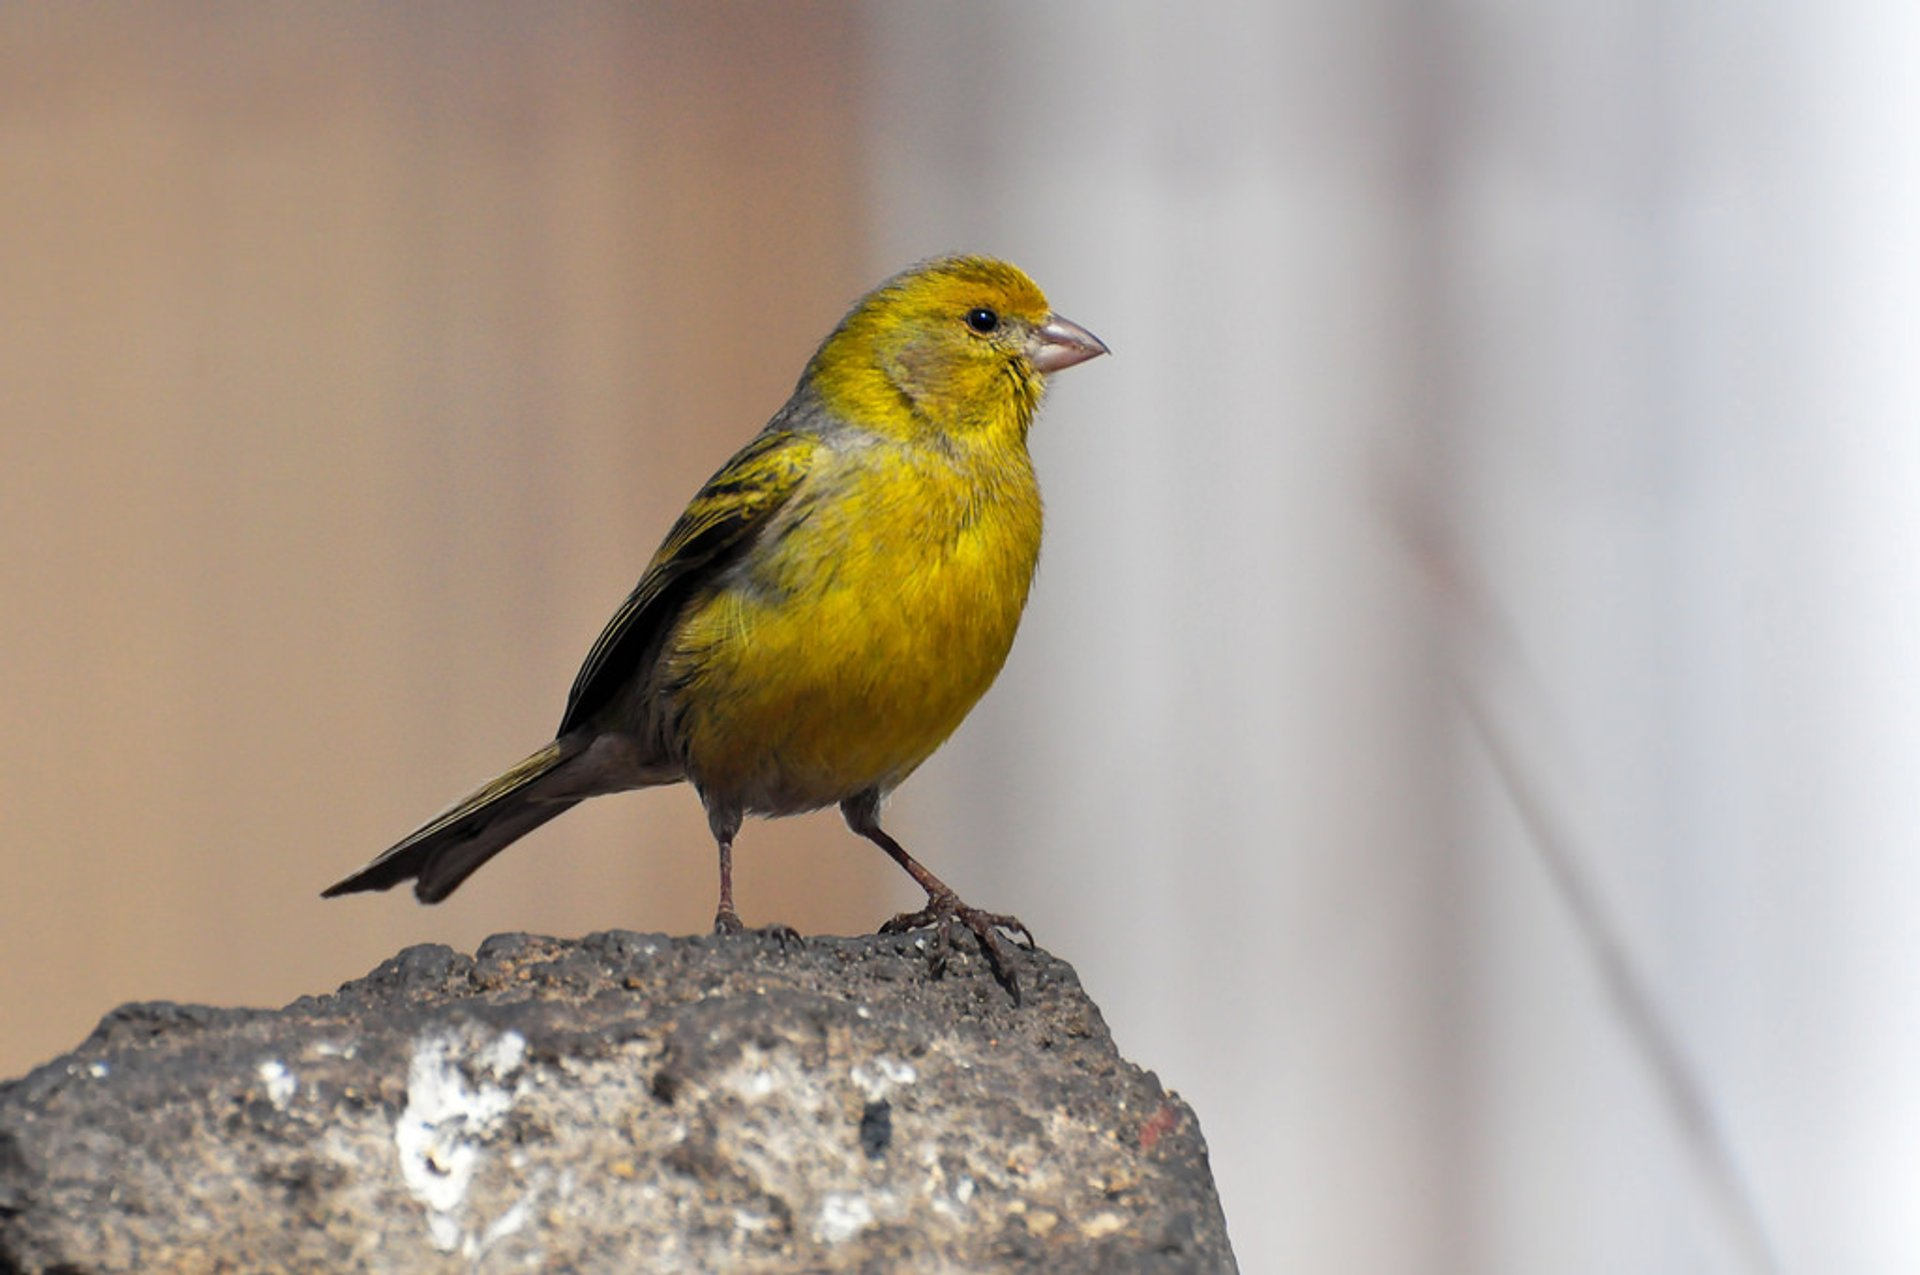 Atlantic Canary Breeding in Canary Islands 2020 - Best Time